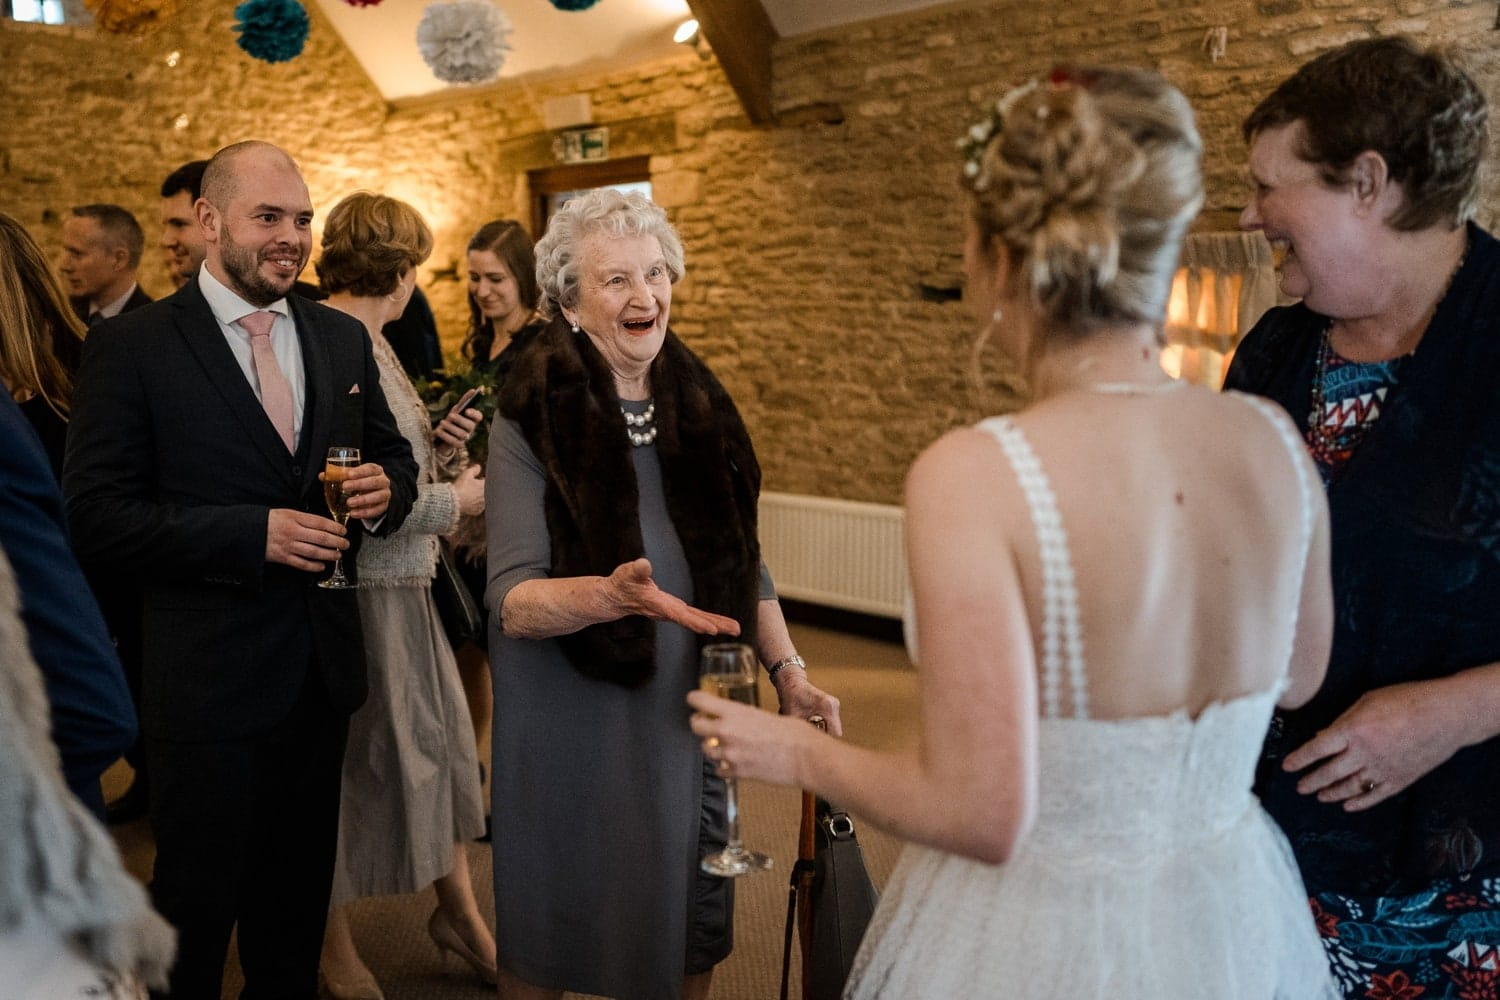 Wedding guests congratulate bride